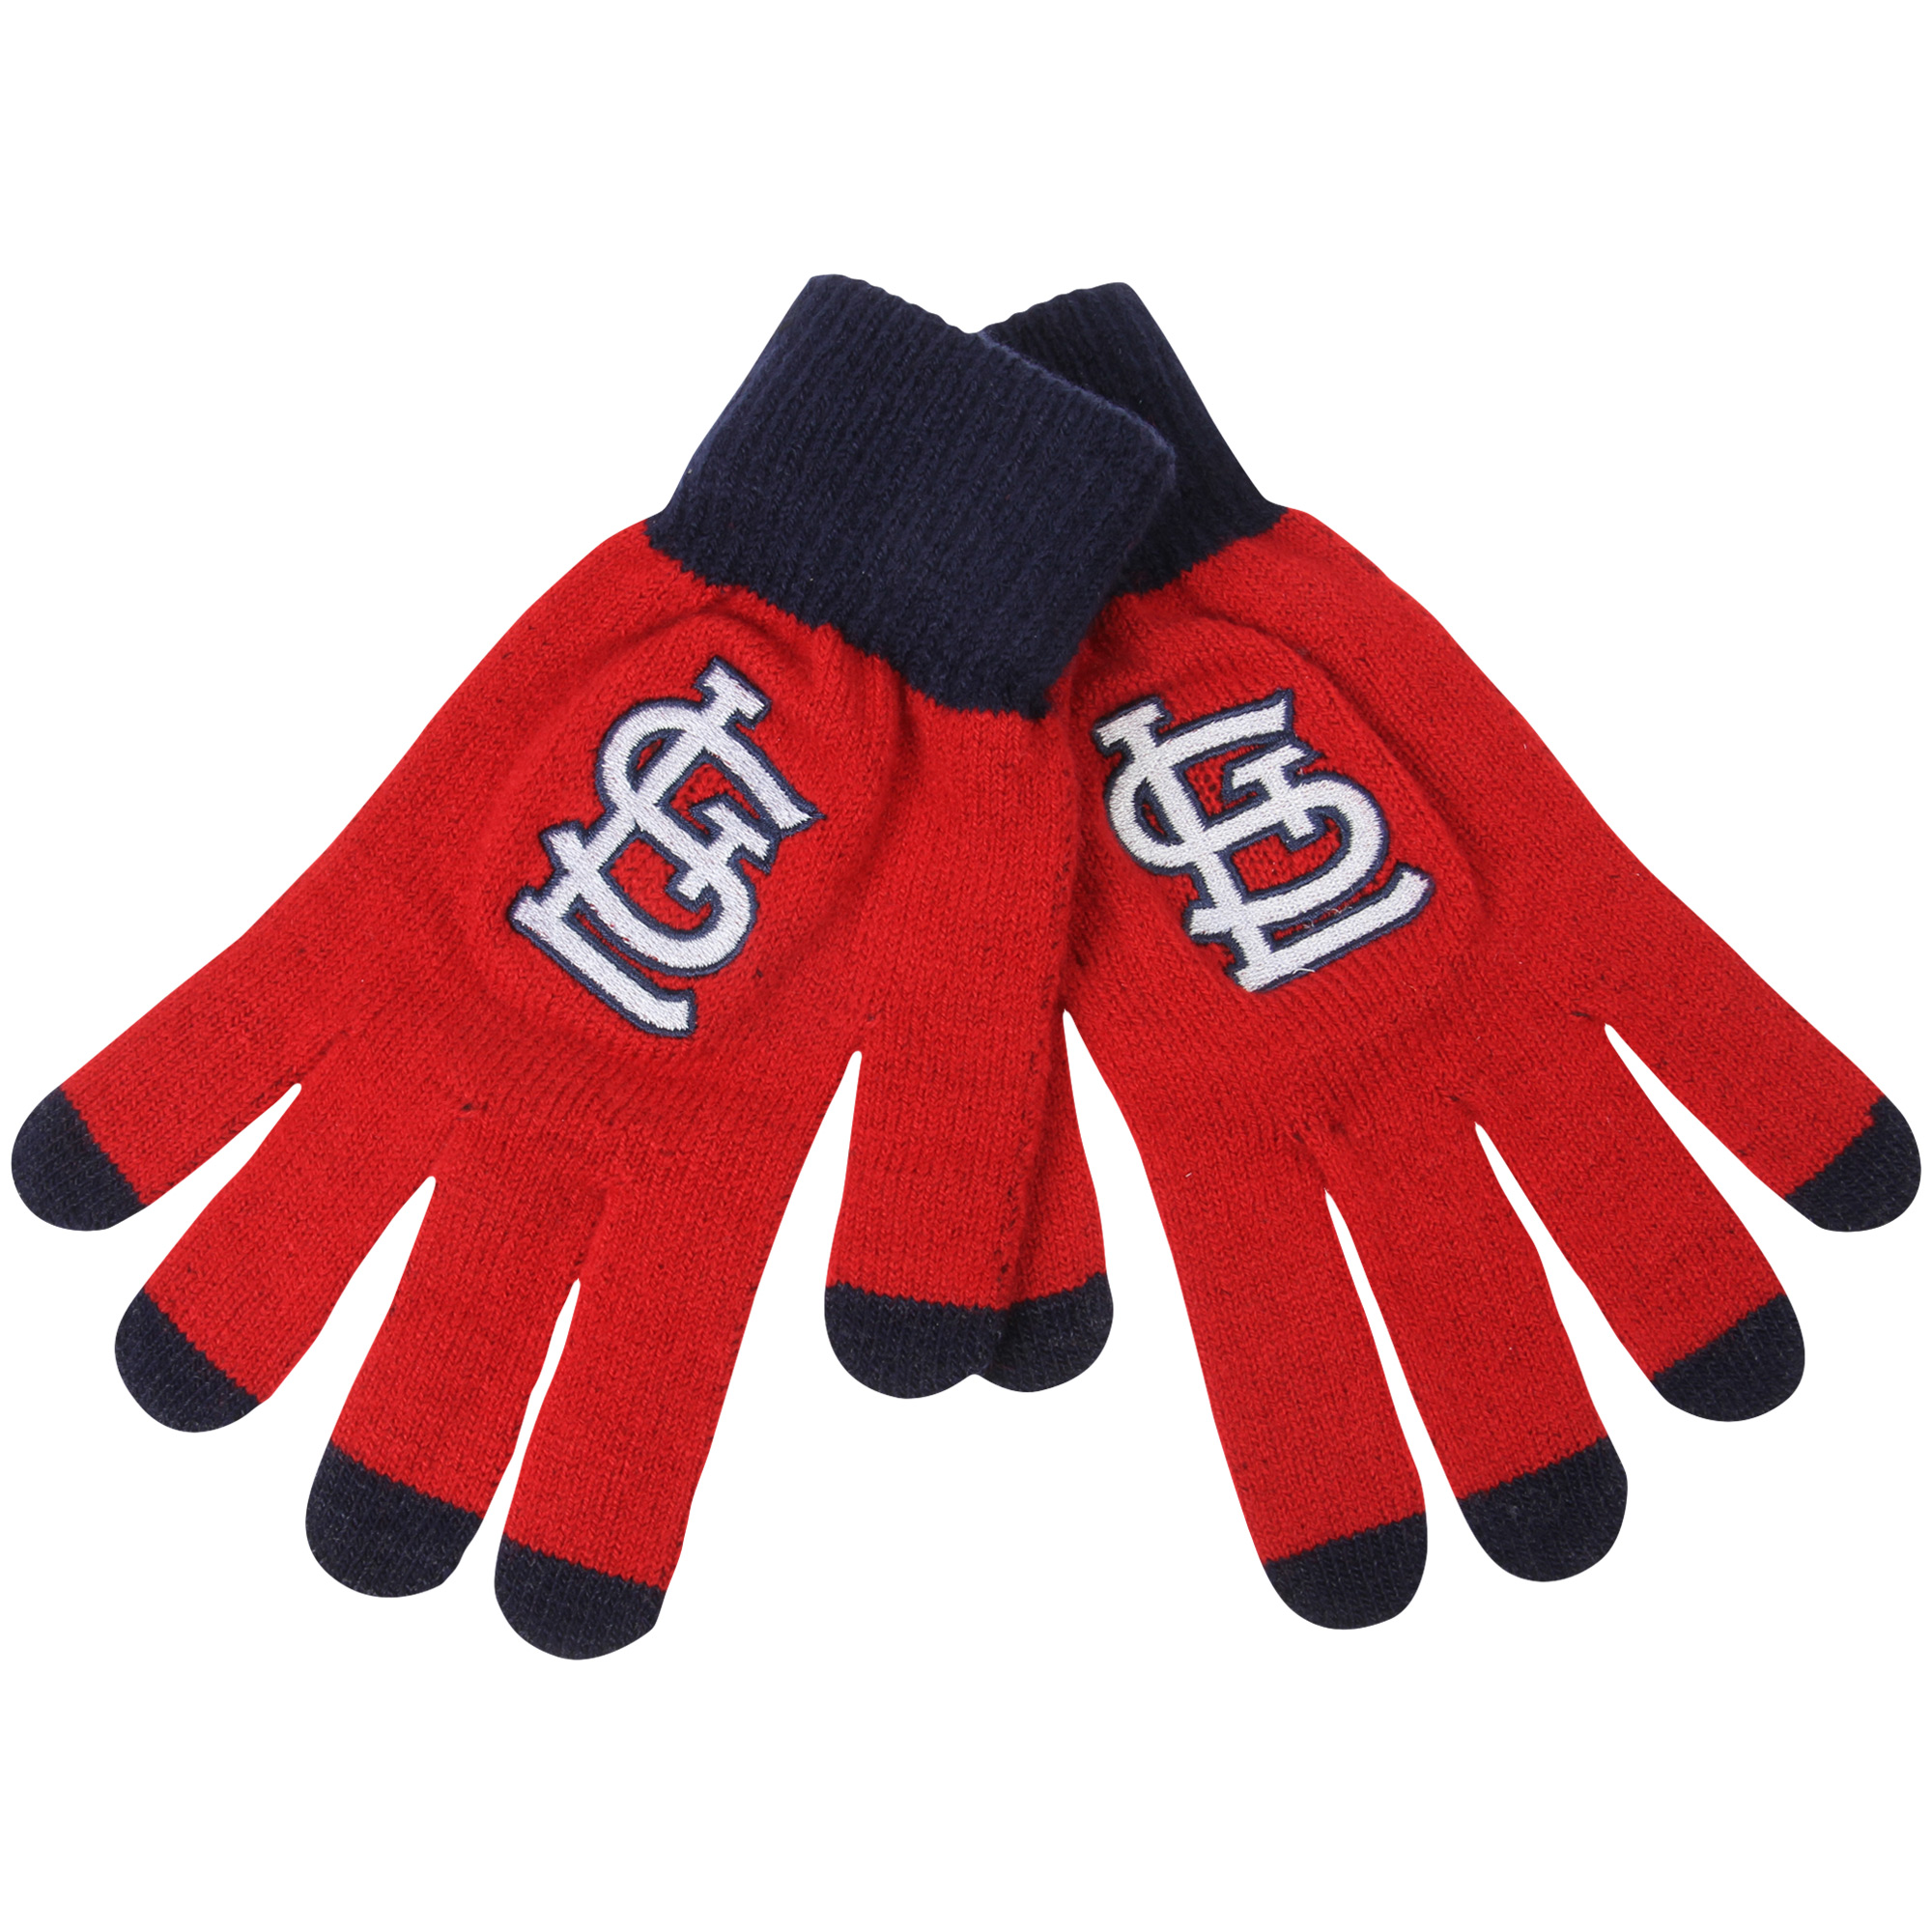 St. Louis Cardinals Official MLB Glove Solid Outdoor Winter Stretch Knit by Forever Collectibles 262183 by TEAM BEANS INC/FOREVER COLLECTIBLES